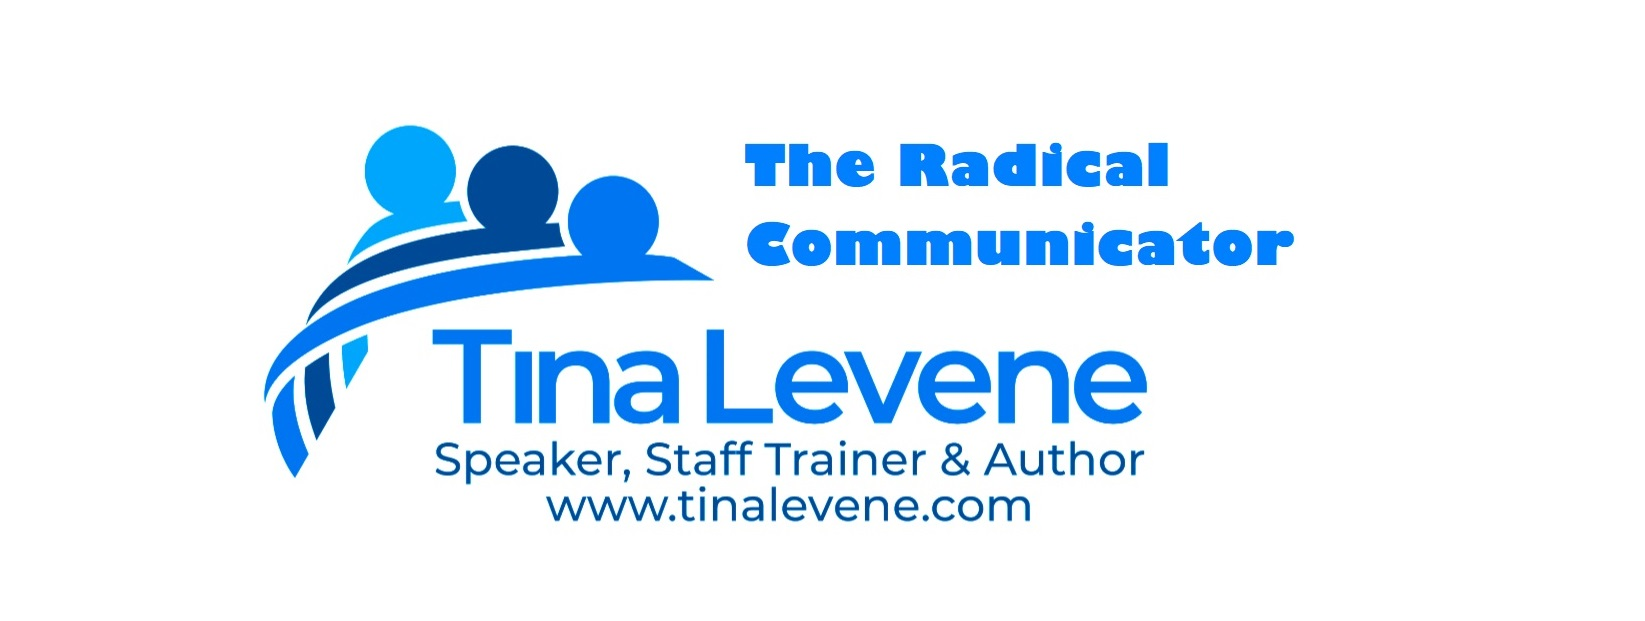 Tina Levene, Speaker & Author